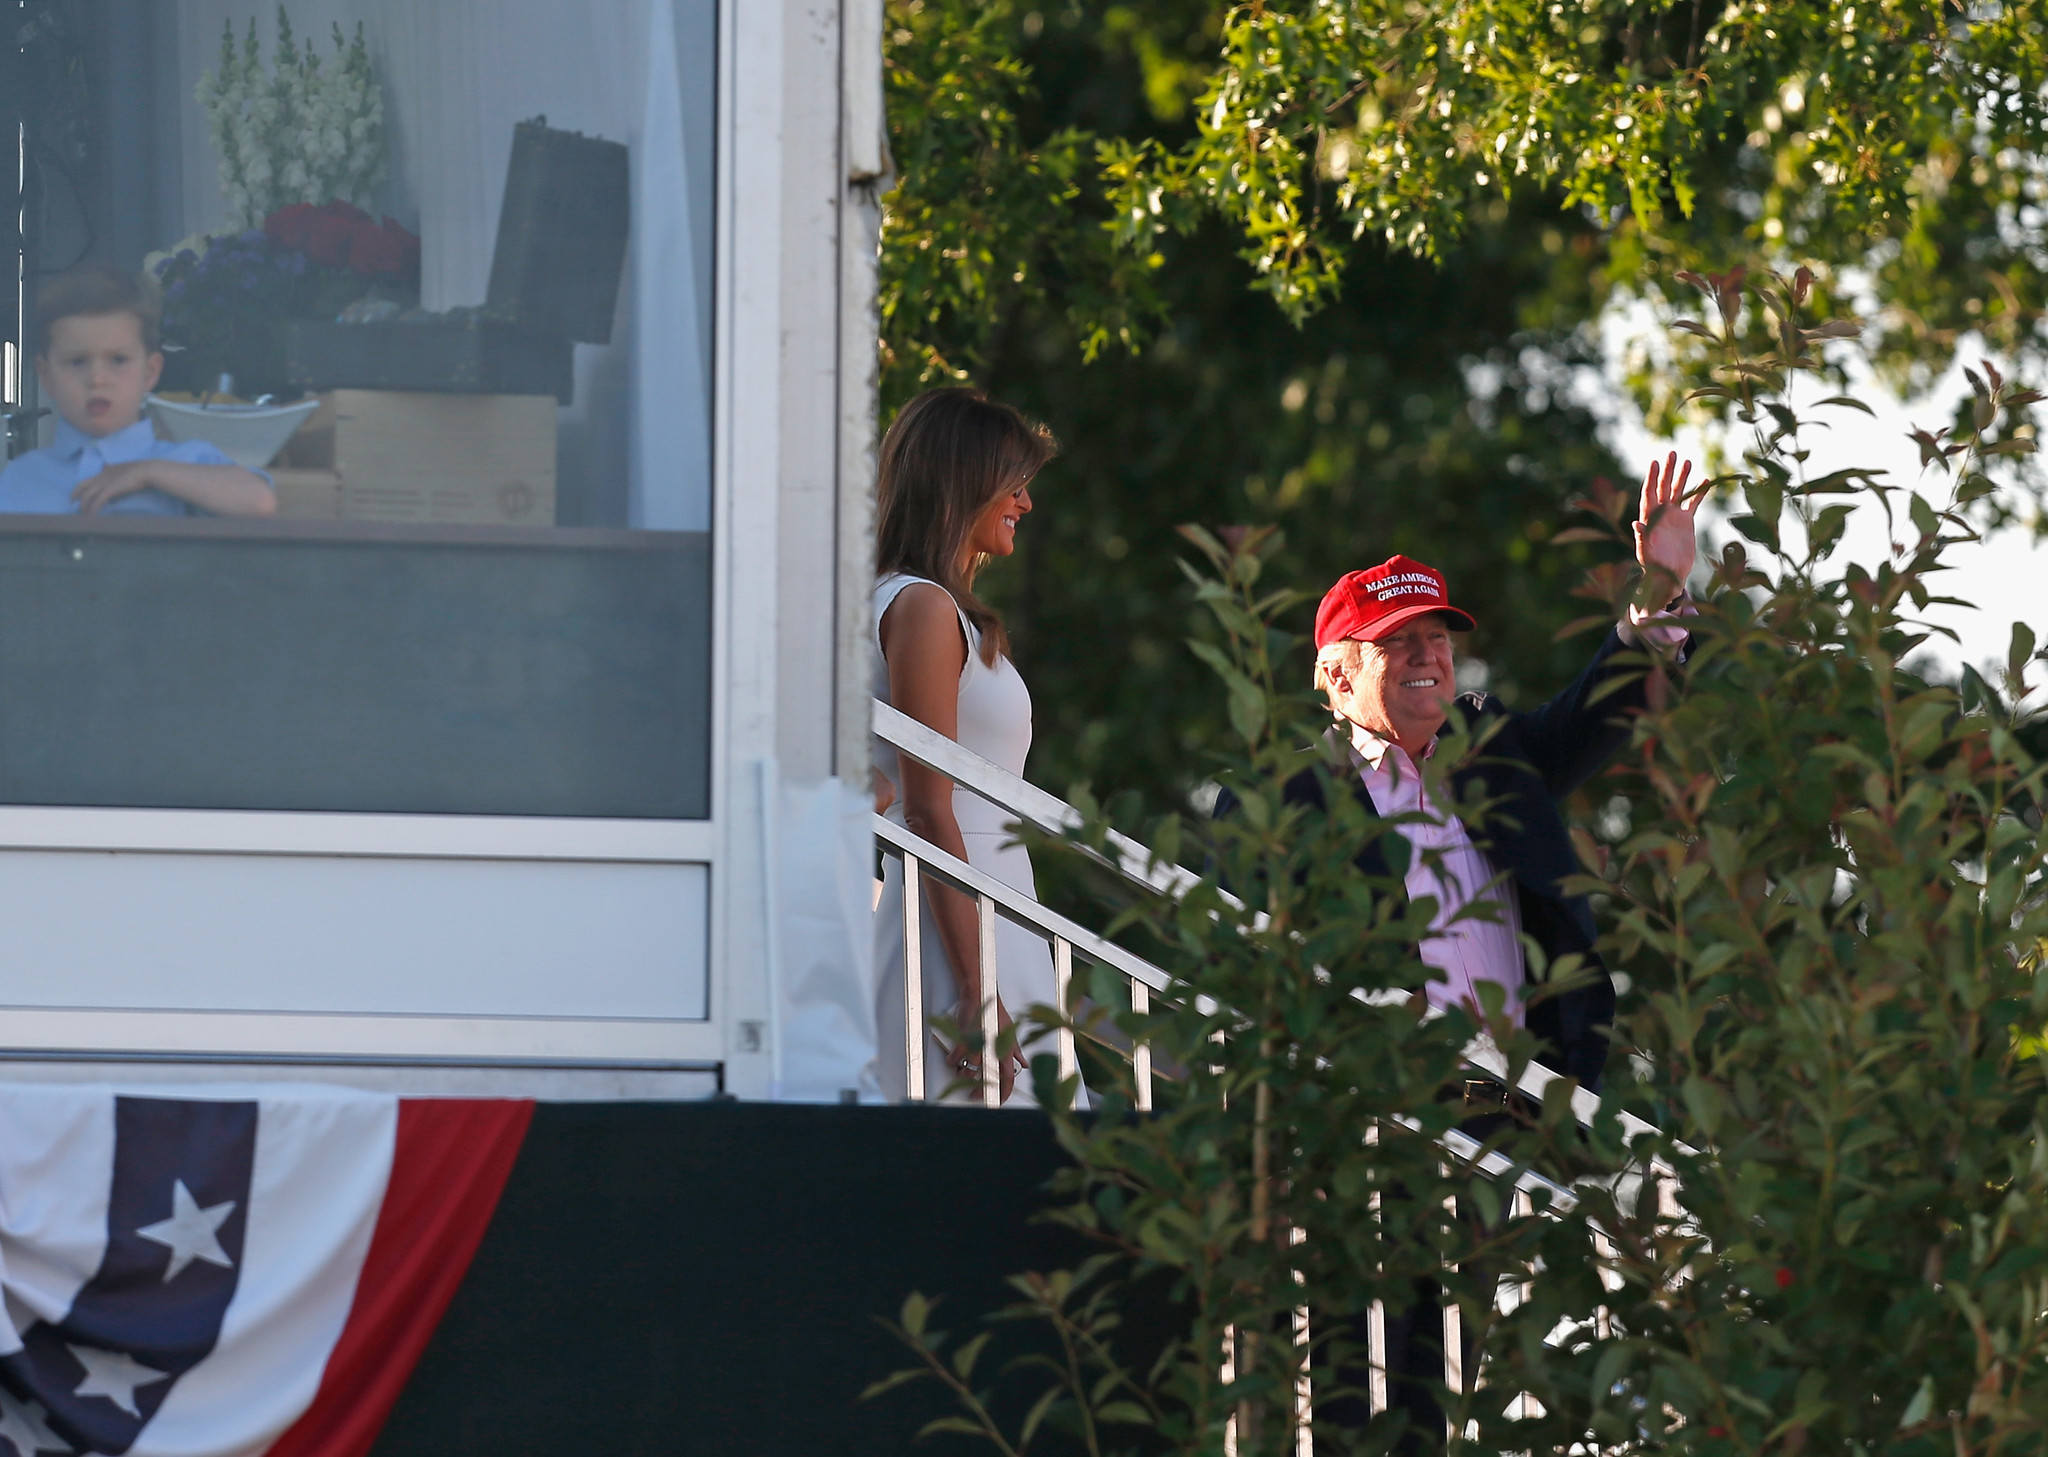 Melania Trump looks radiant in playful sleeveless dress at US Women's Open